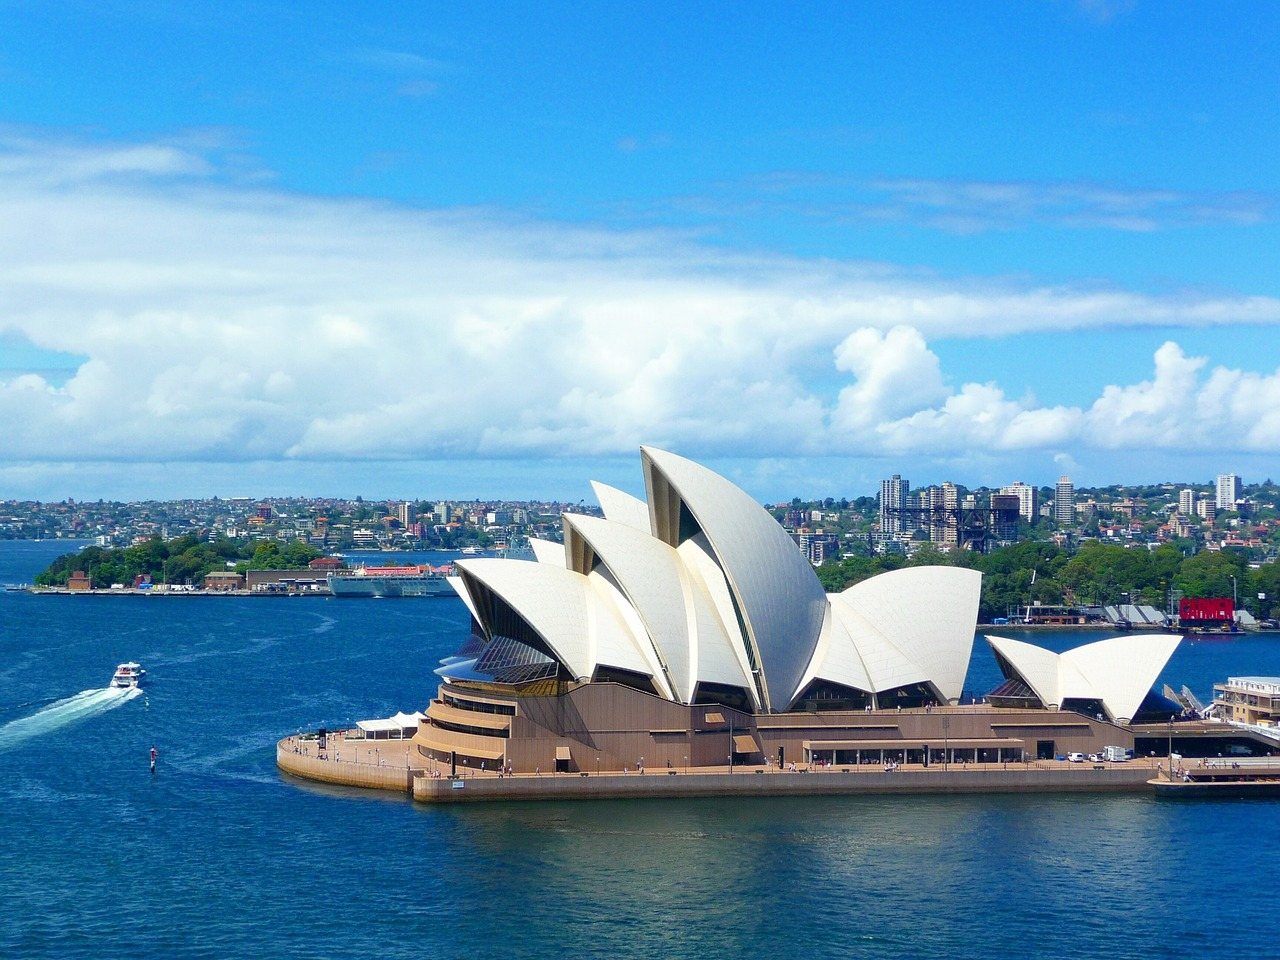 sydney airbnb management companies reviewed